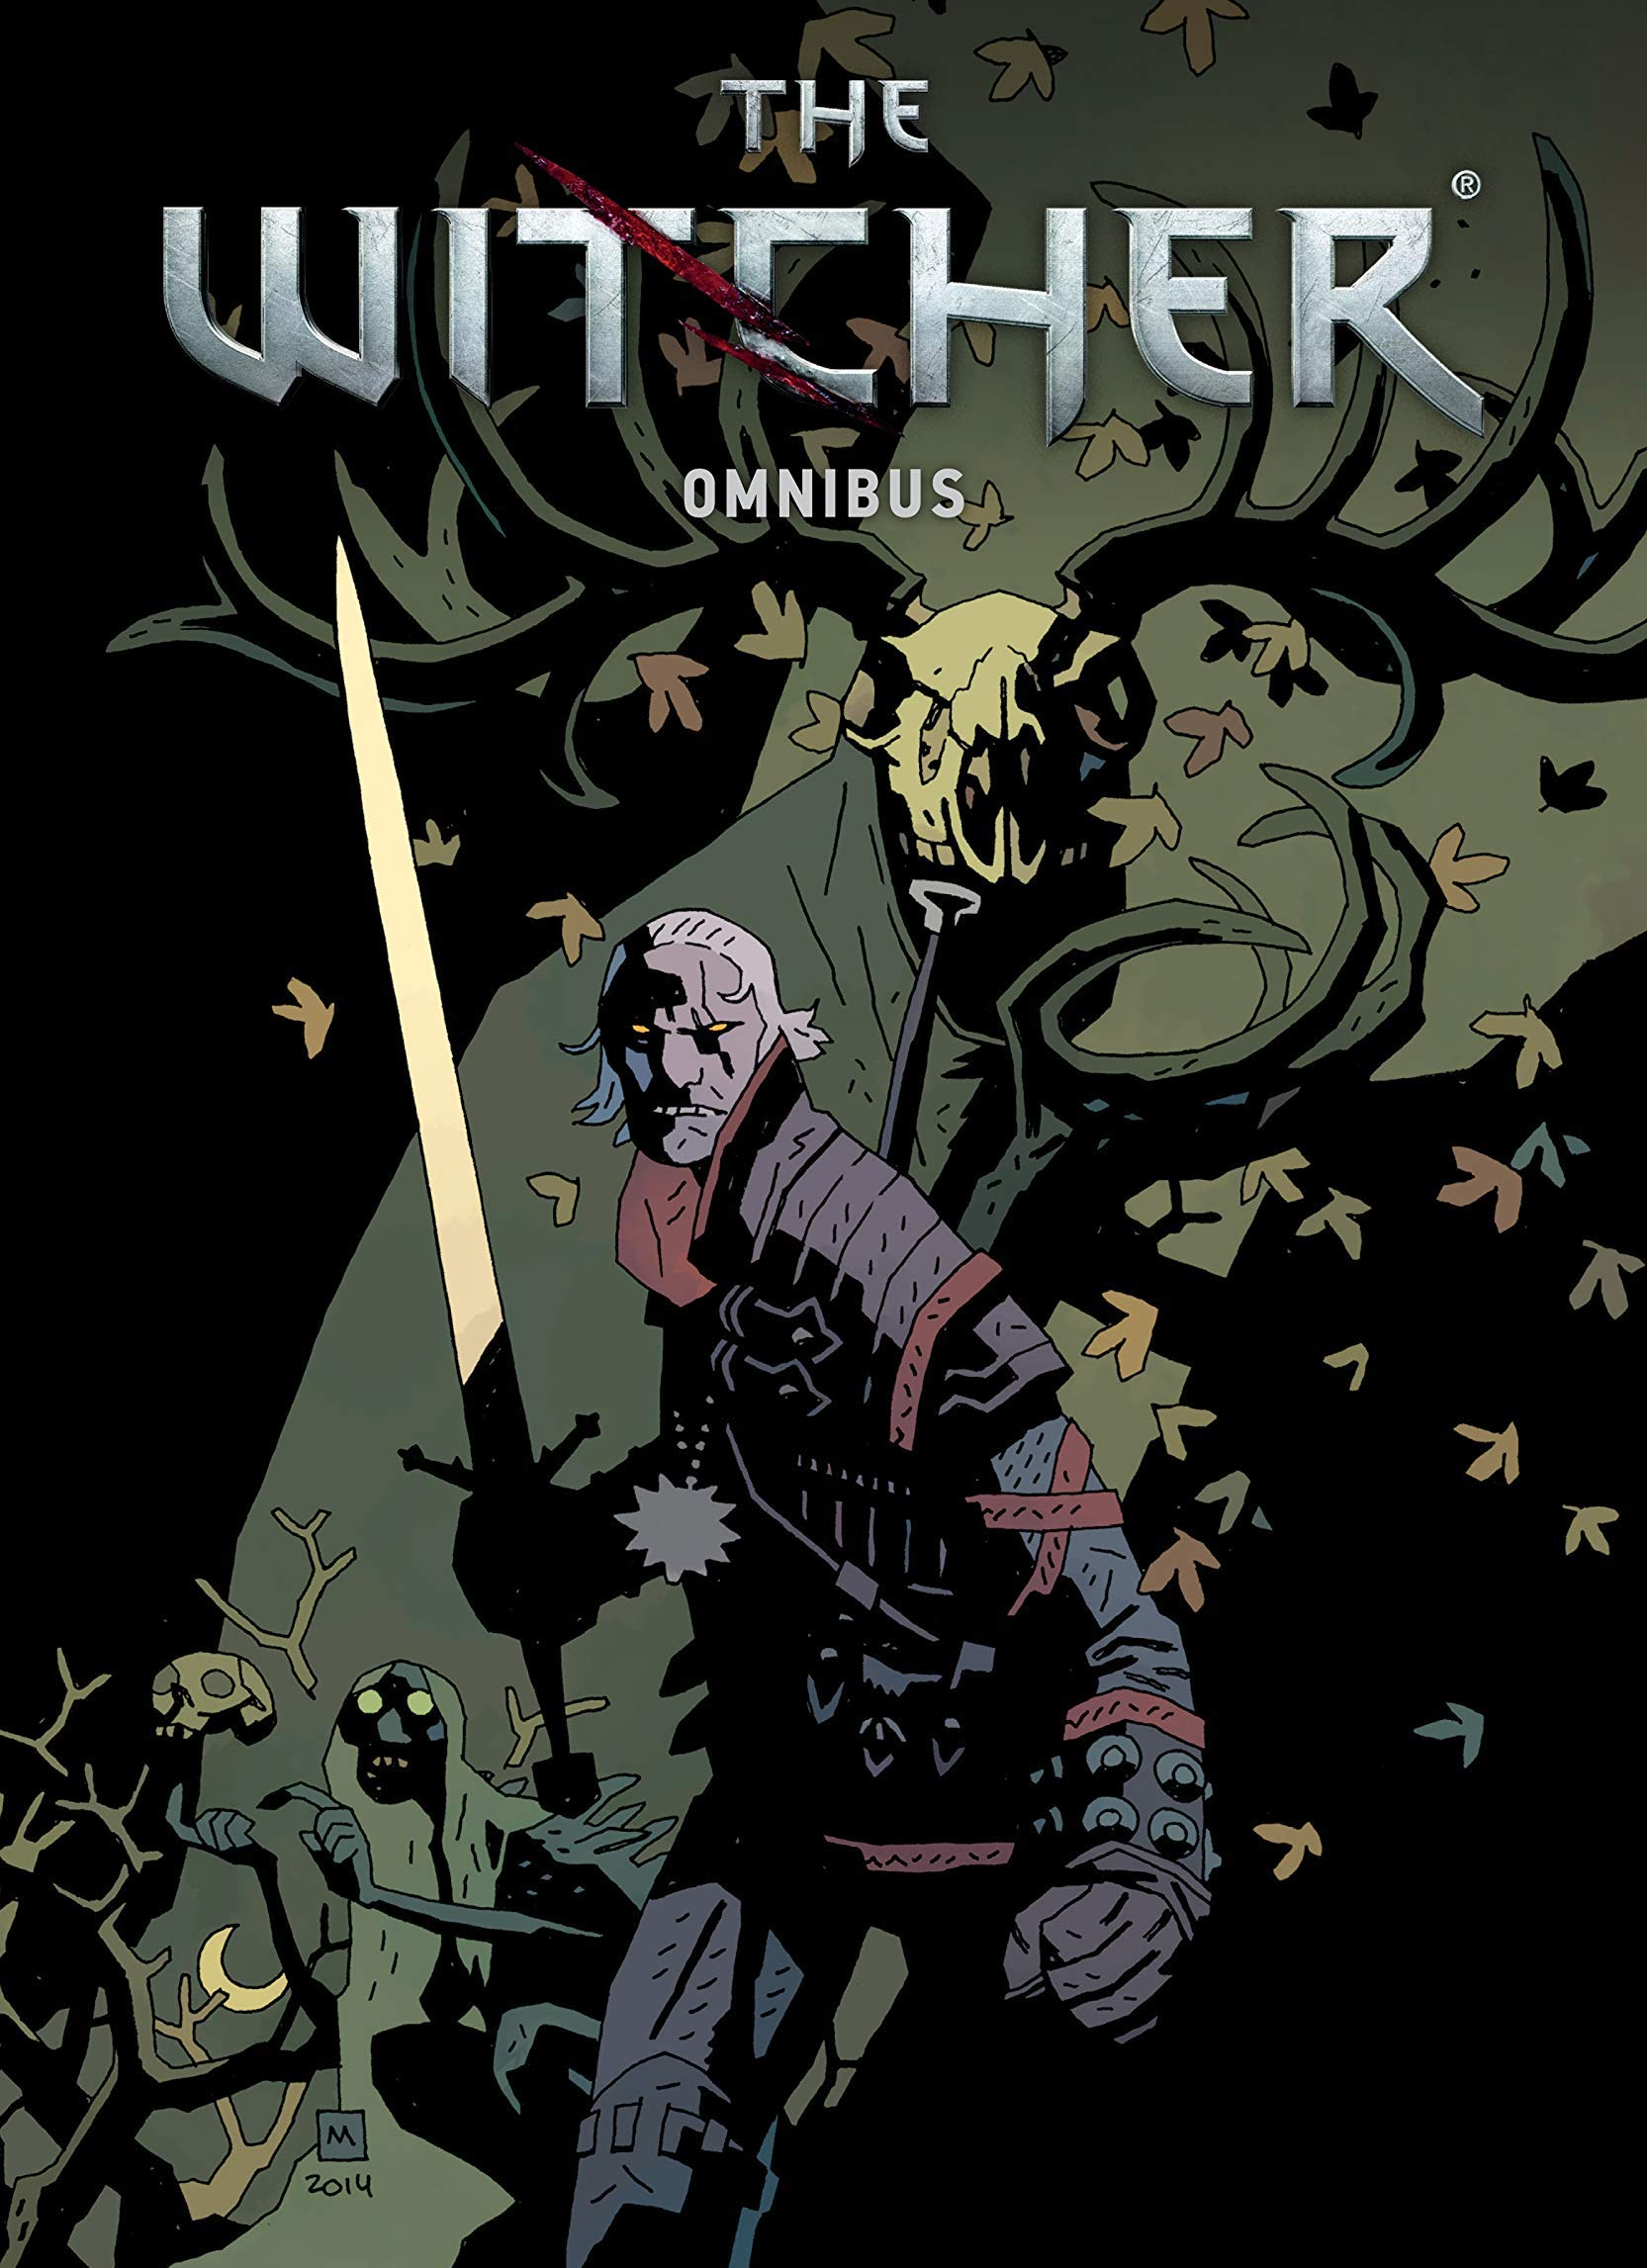 The Witcher Omnibus: Review